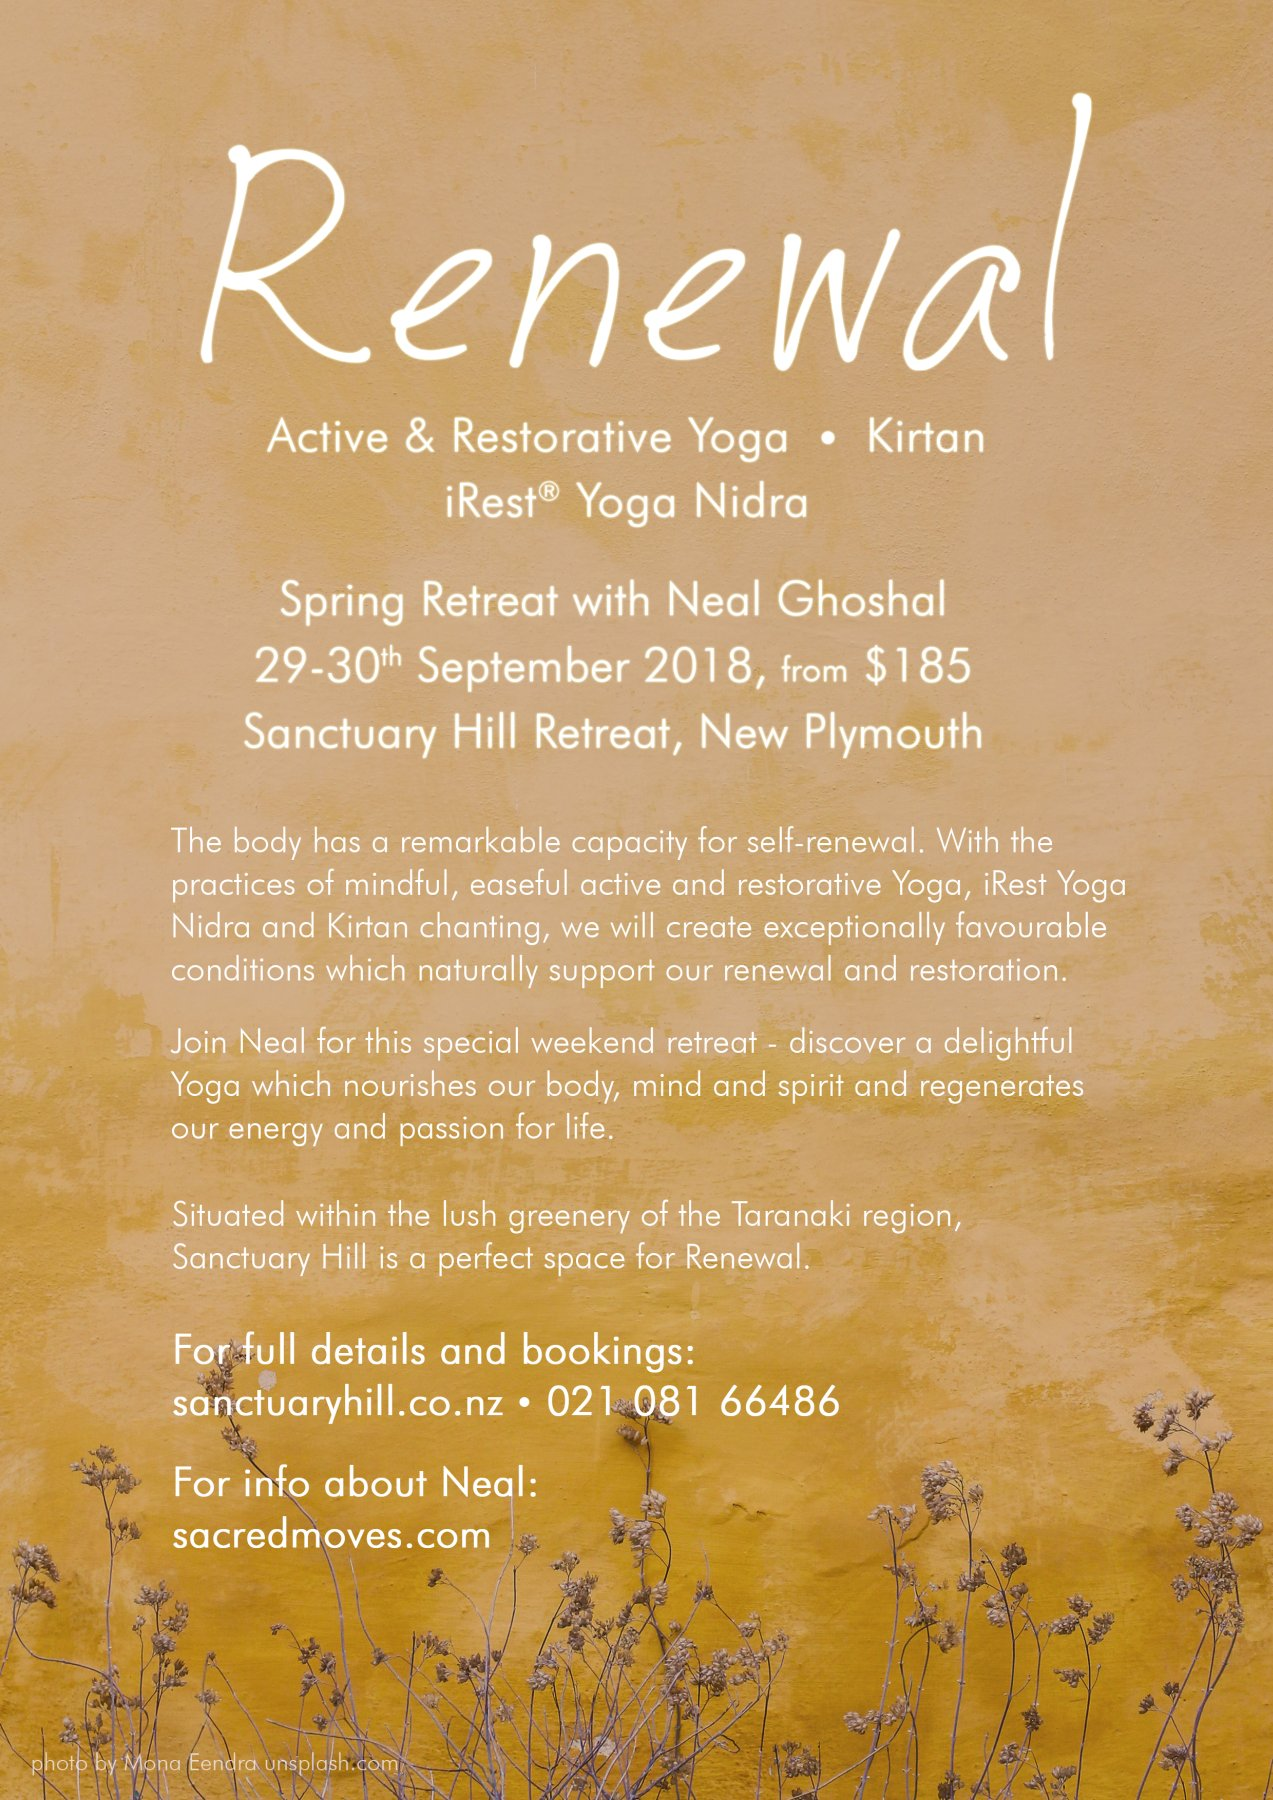 Renewal, Spring Yoga Retreat at Sanctuary Hill Retreat, New Plymouth